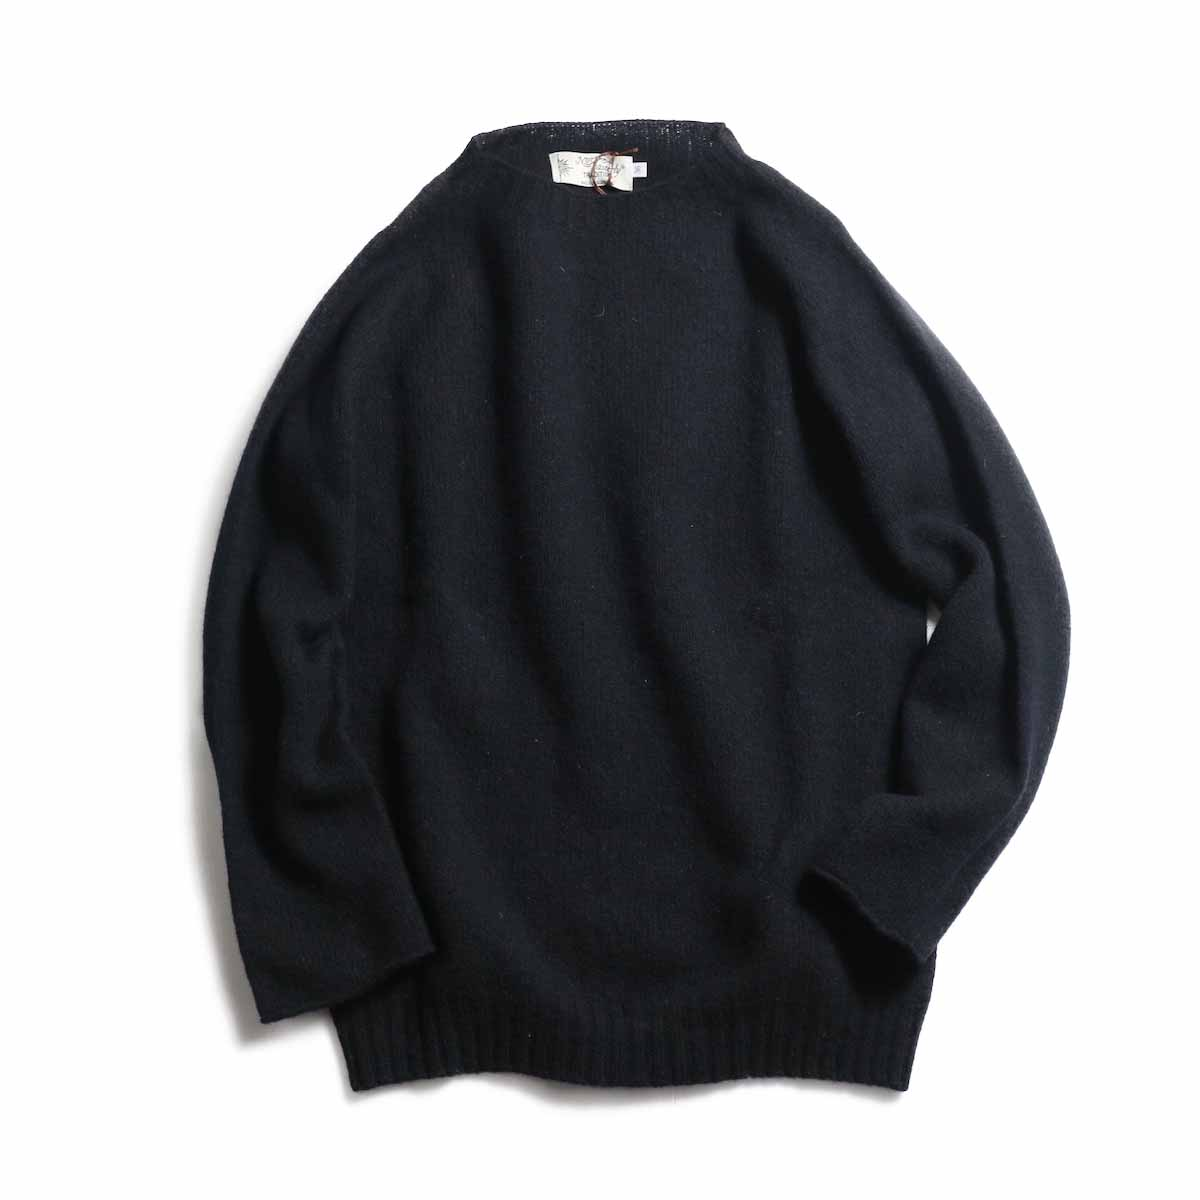 NOR'EASTERLY / L/S Crew Neck Knit -BLACK